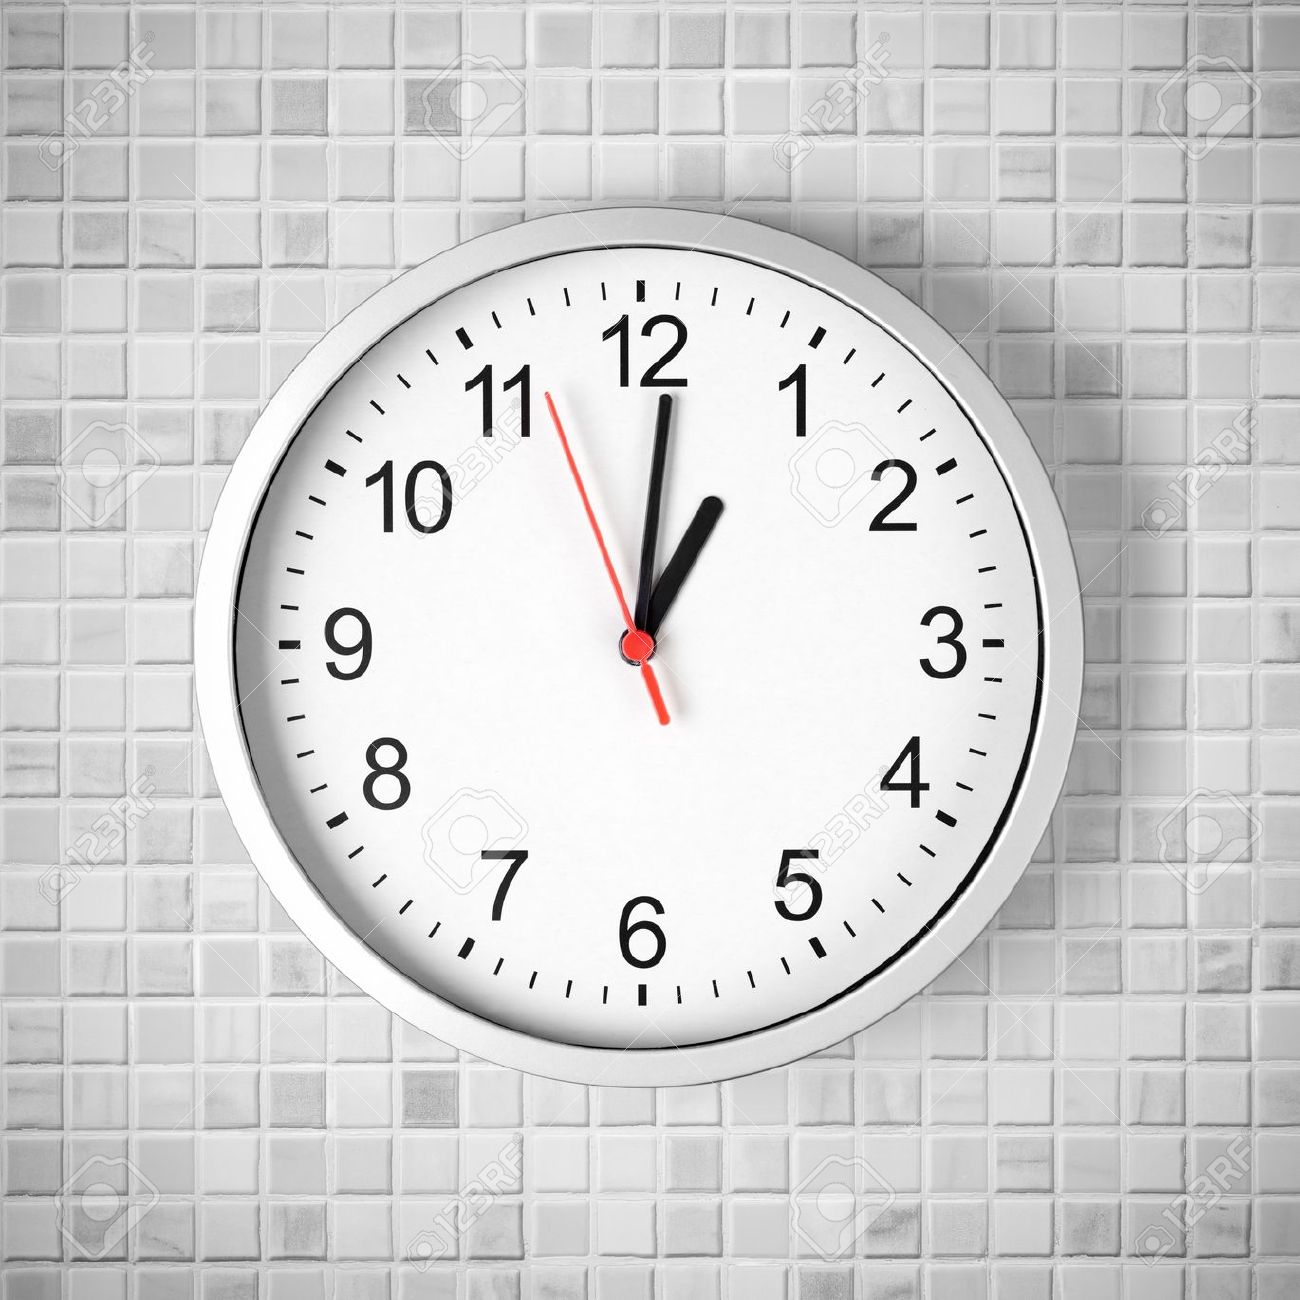 wall clock images  stock pictures royalty free wall clock photos  - wall clock simple clock or watch on white tile wall displaying one oclock